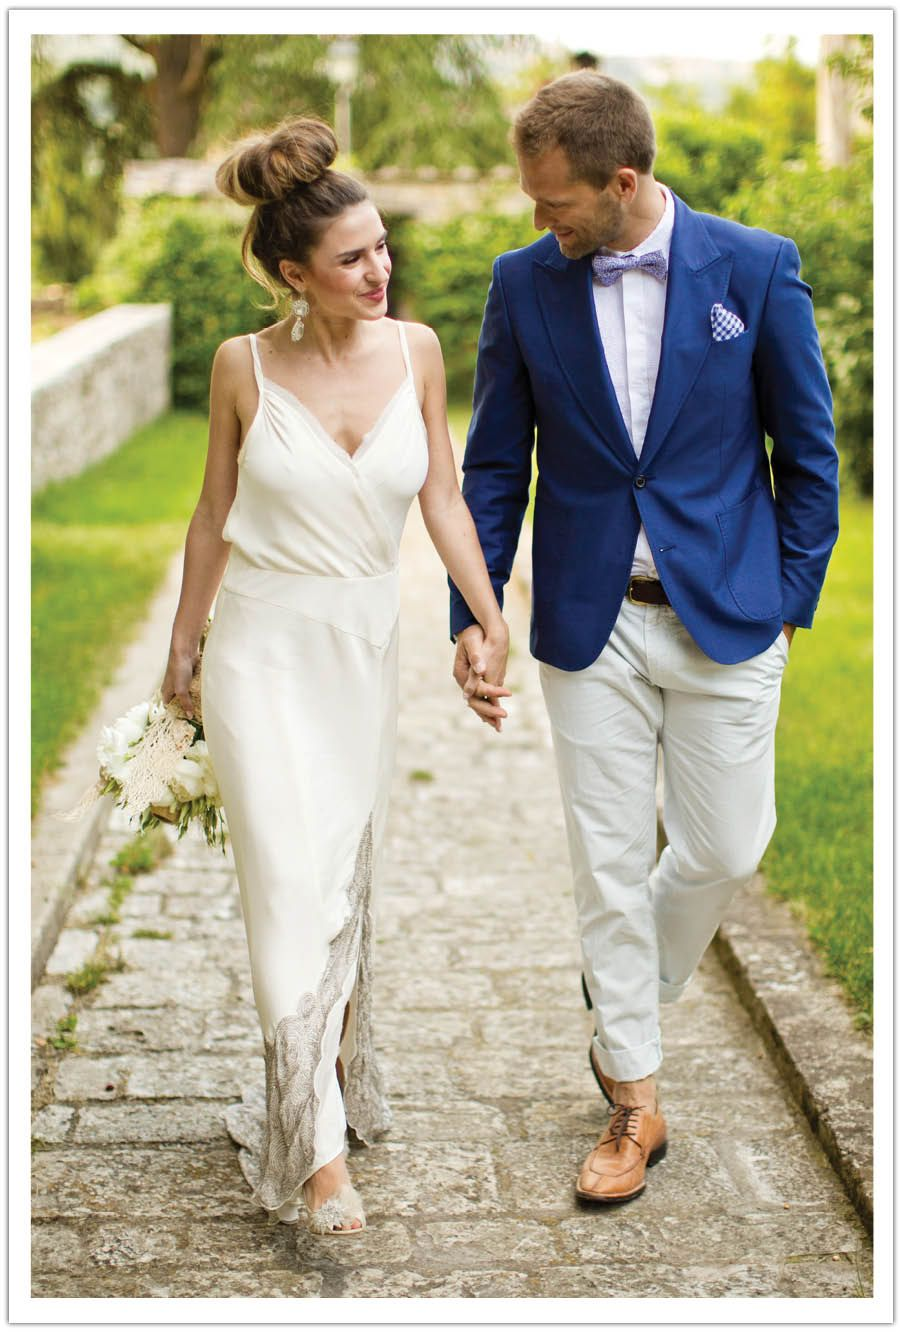 Tuscany in wedding what to wear